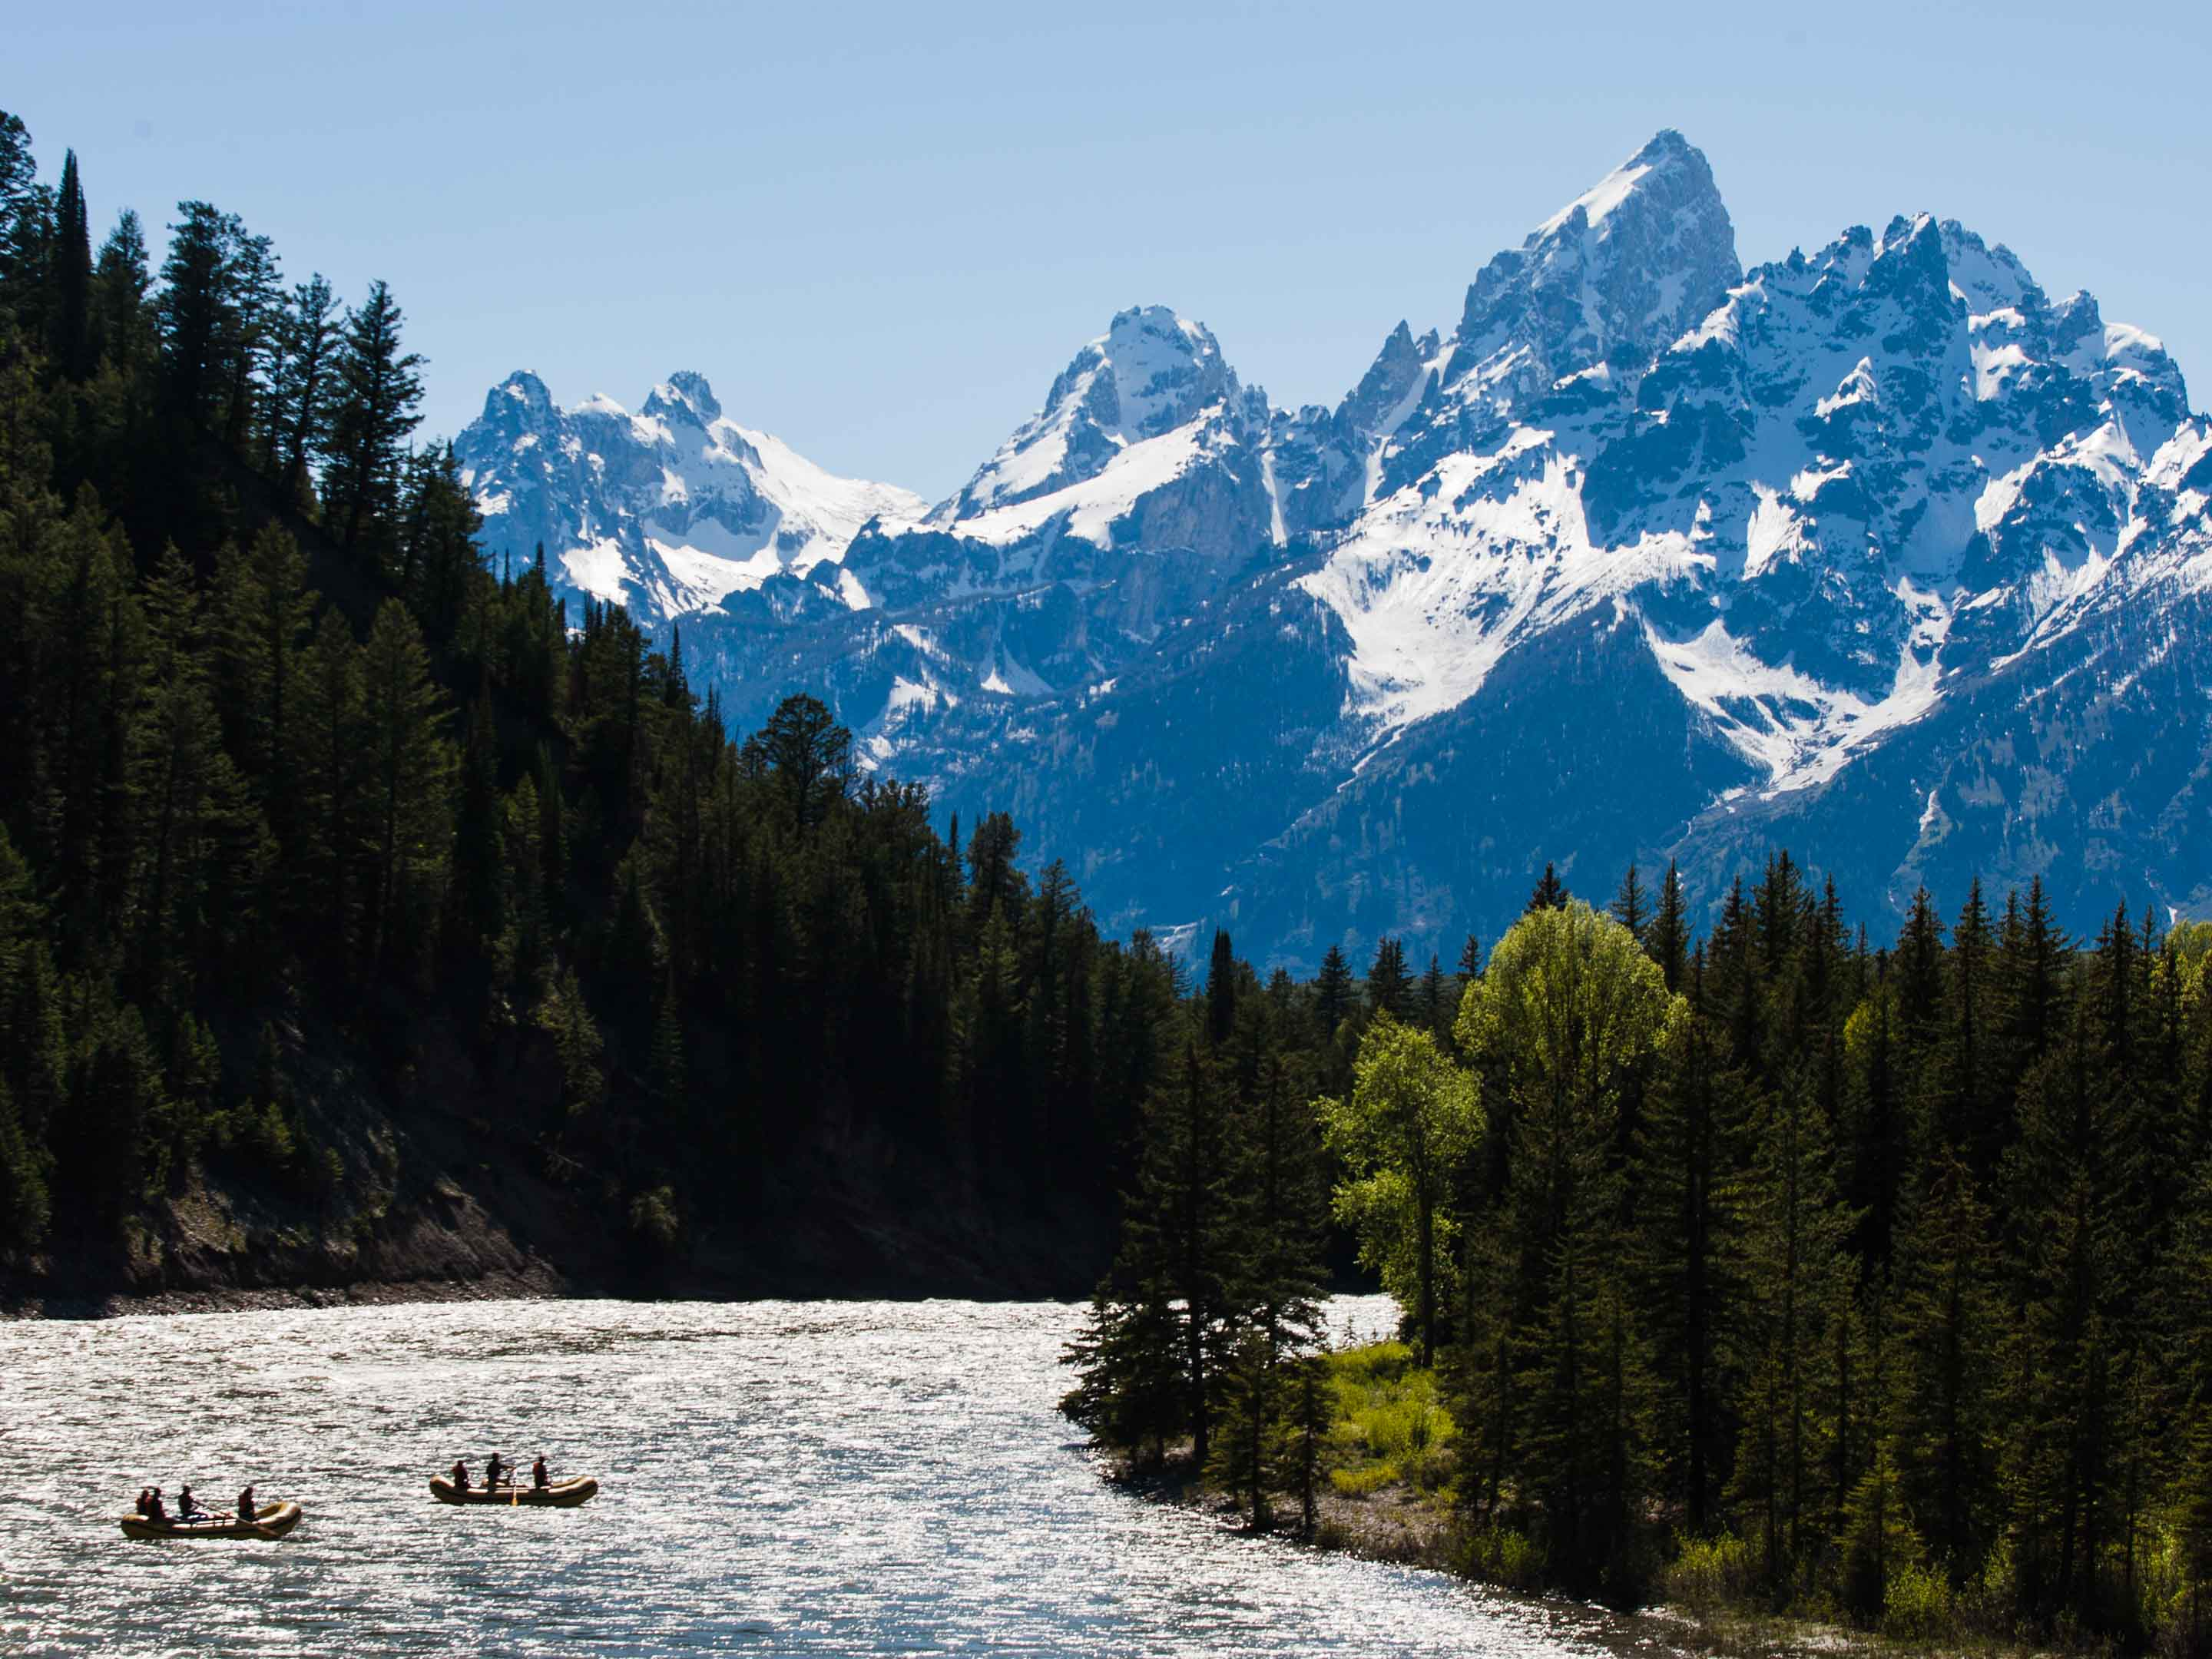 The Best National Parks for Rafting - Snake River Rafting in Grand Teton National Park